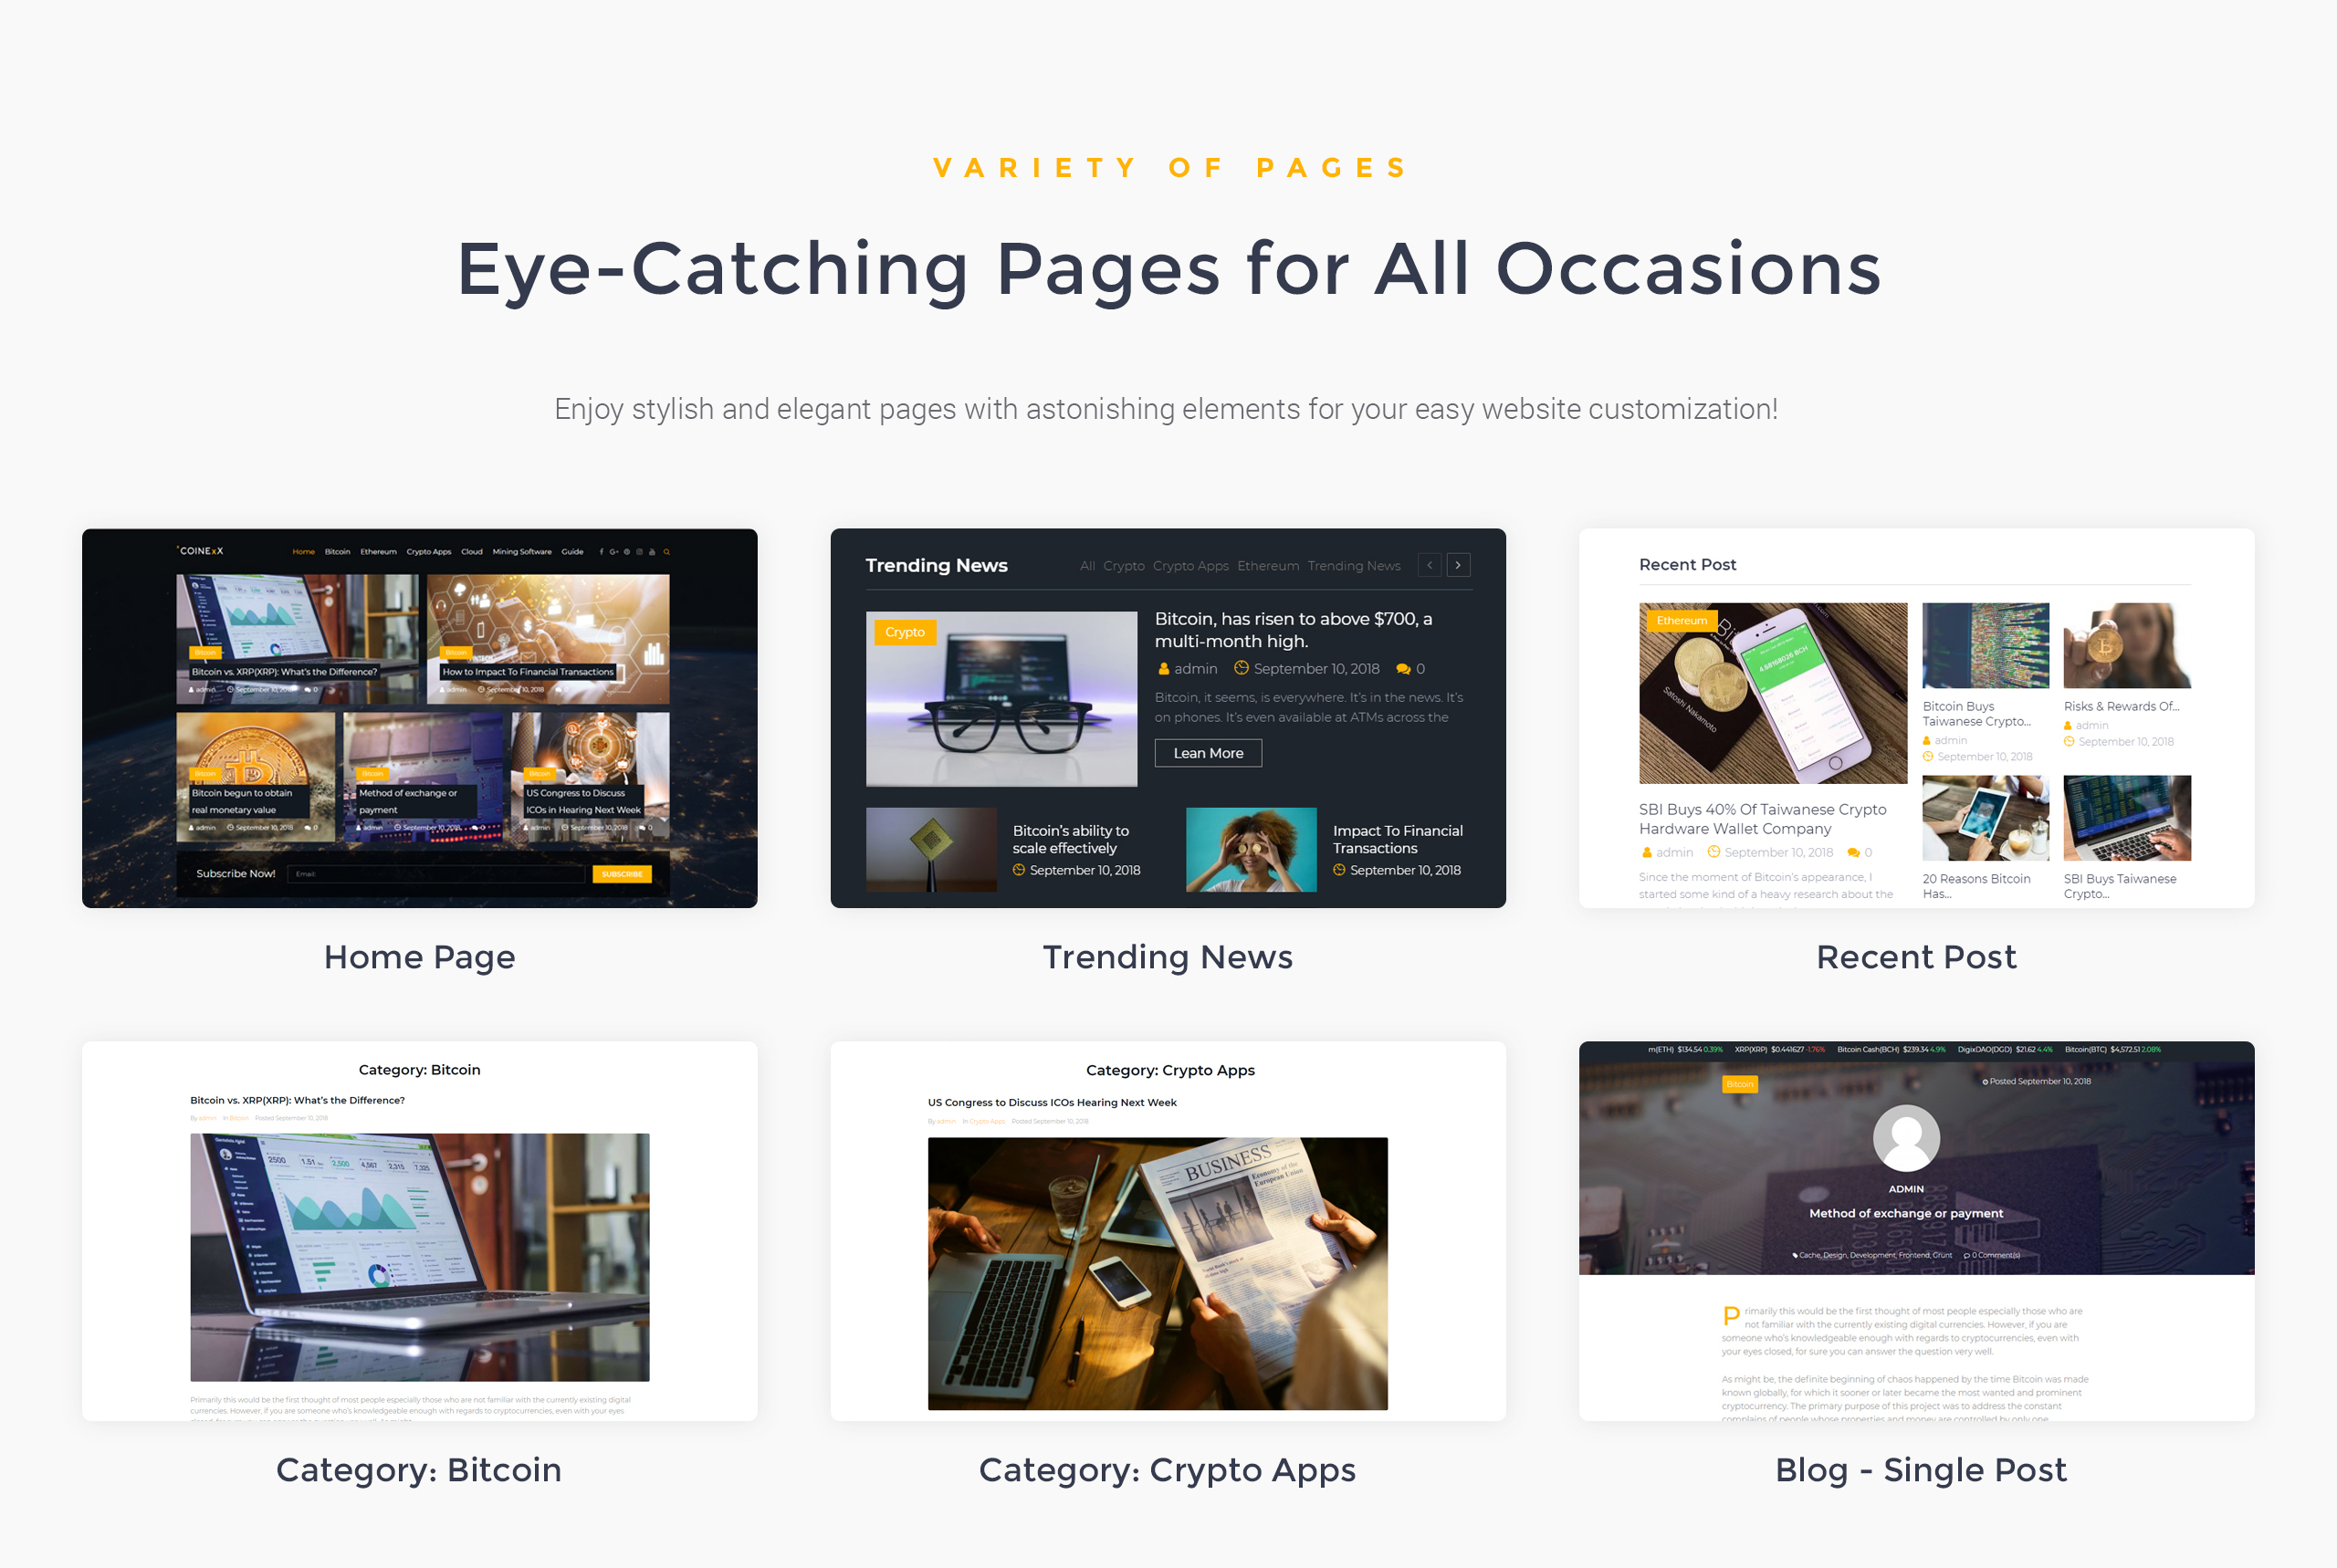 Website Design Template 74548 - finance cash gaming wallet sales invention trend payment monetary